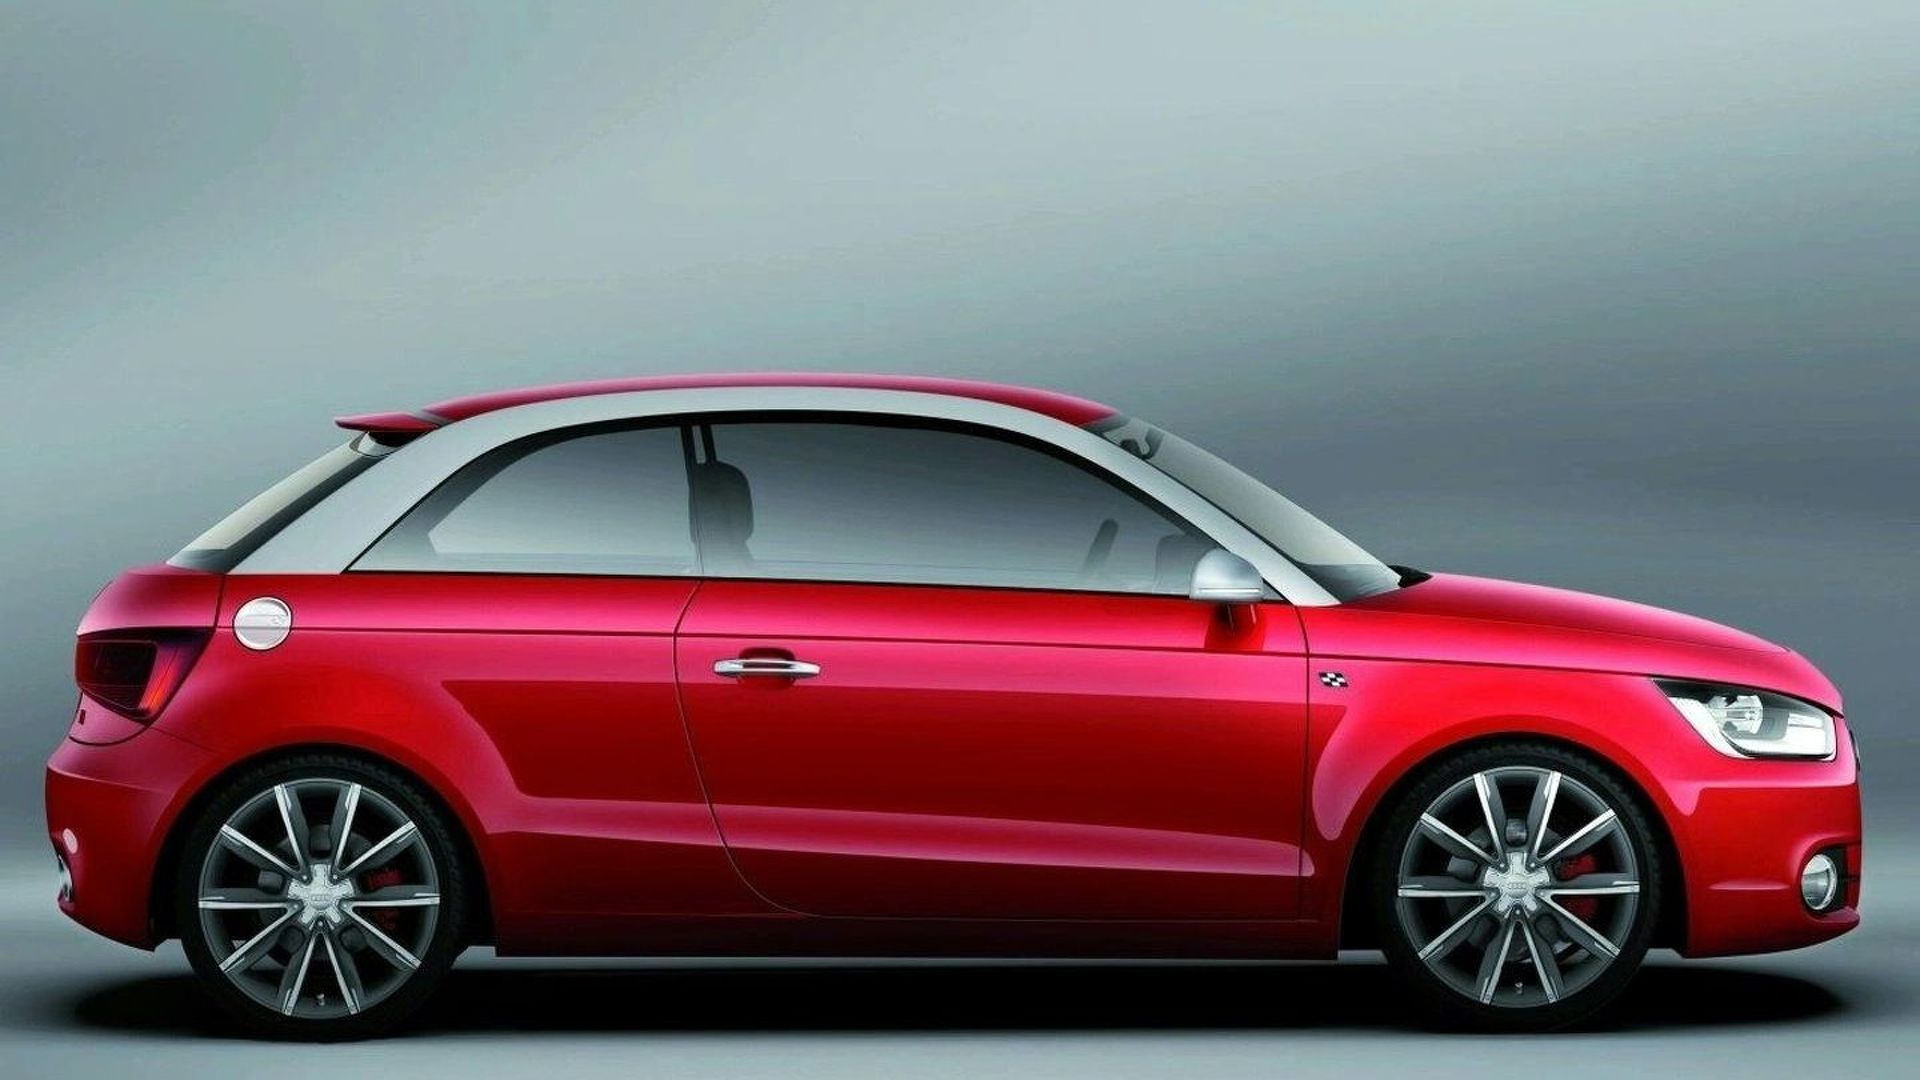 Audi A1 Four-door in Paris?